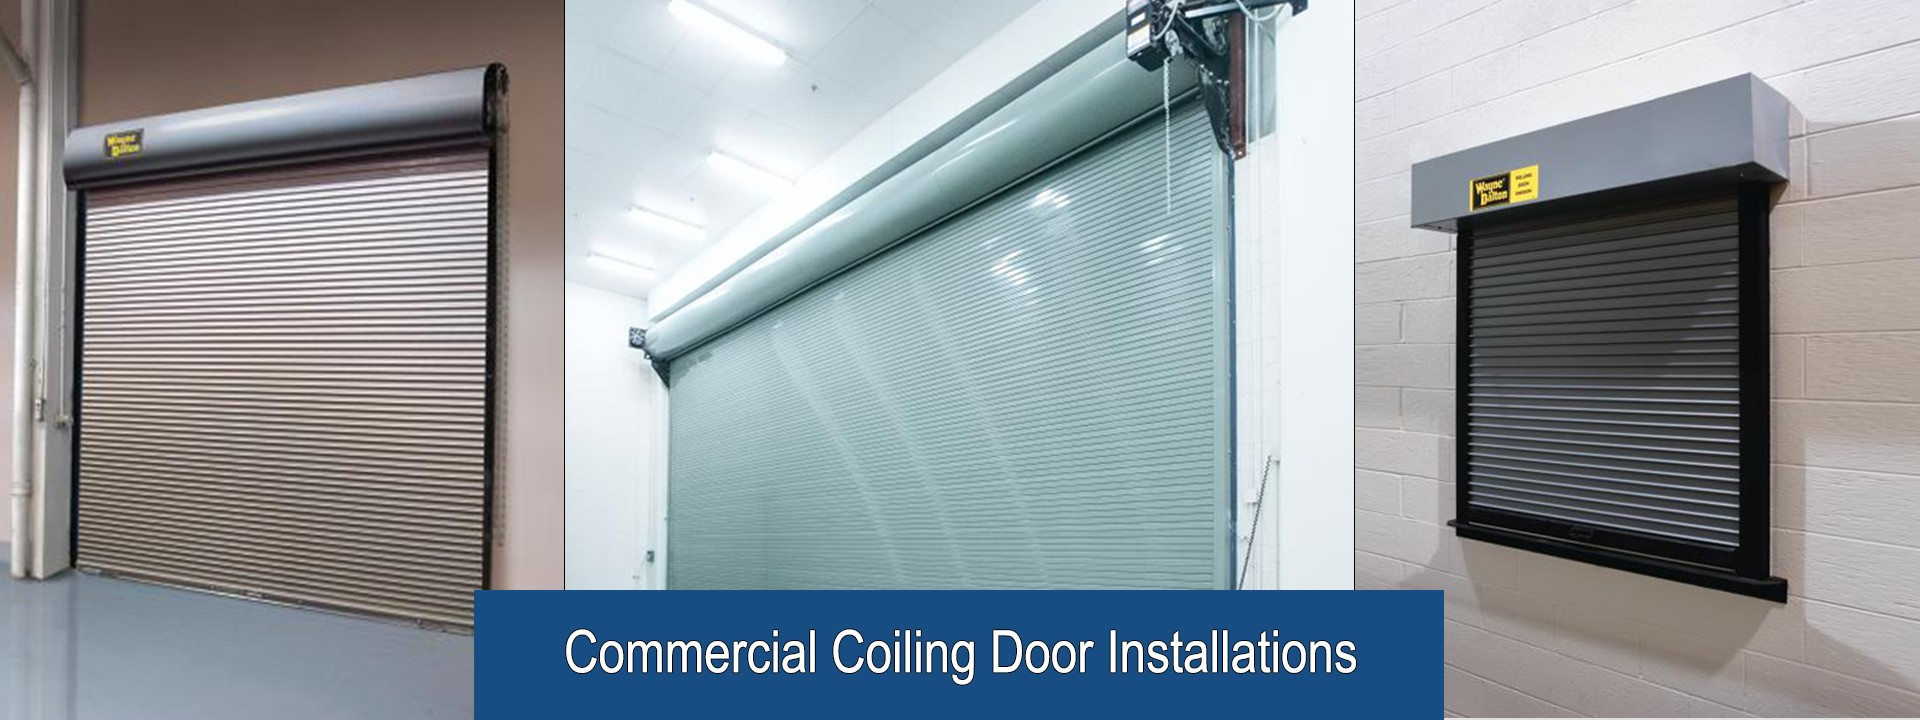 coiling-doors-slider-1920-x720px-03